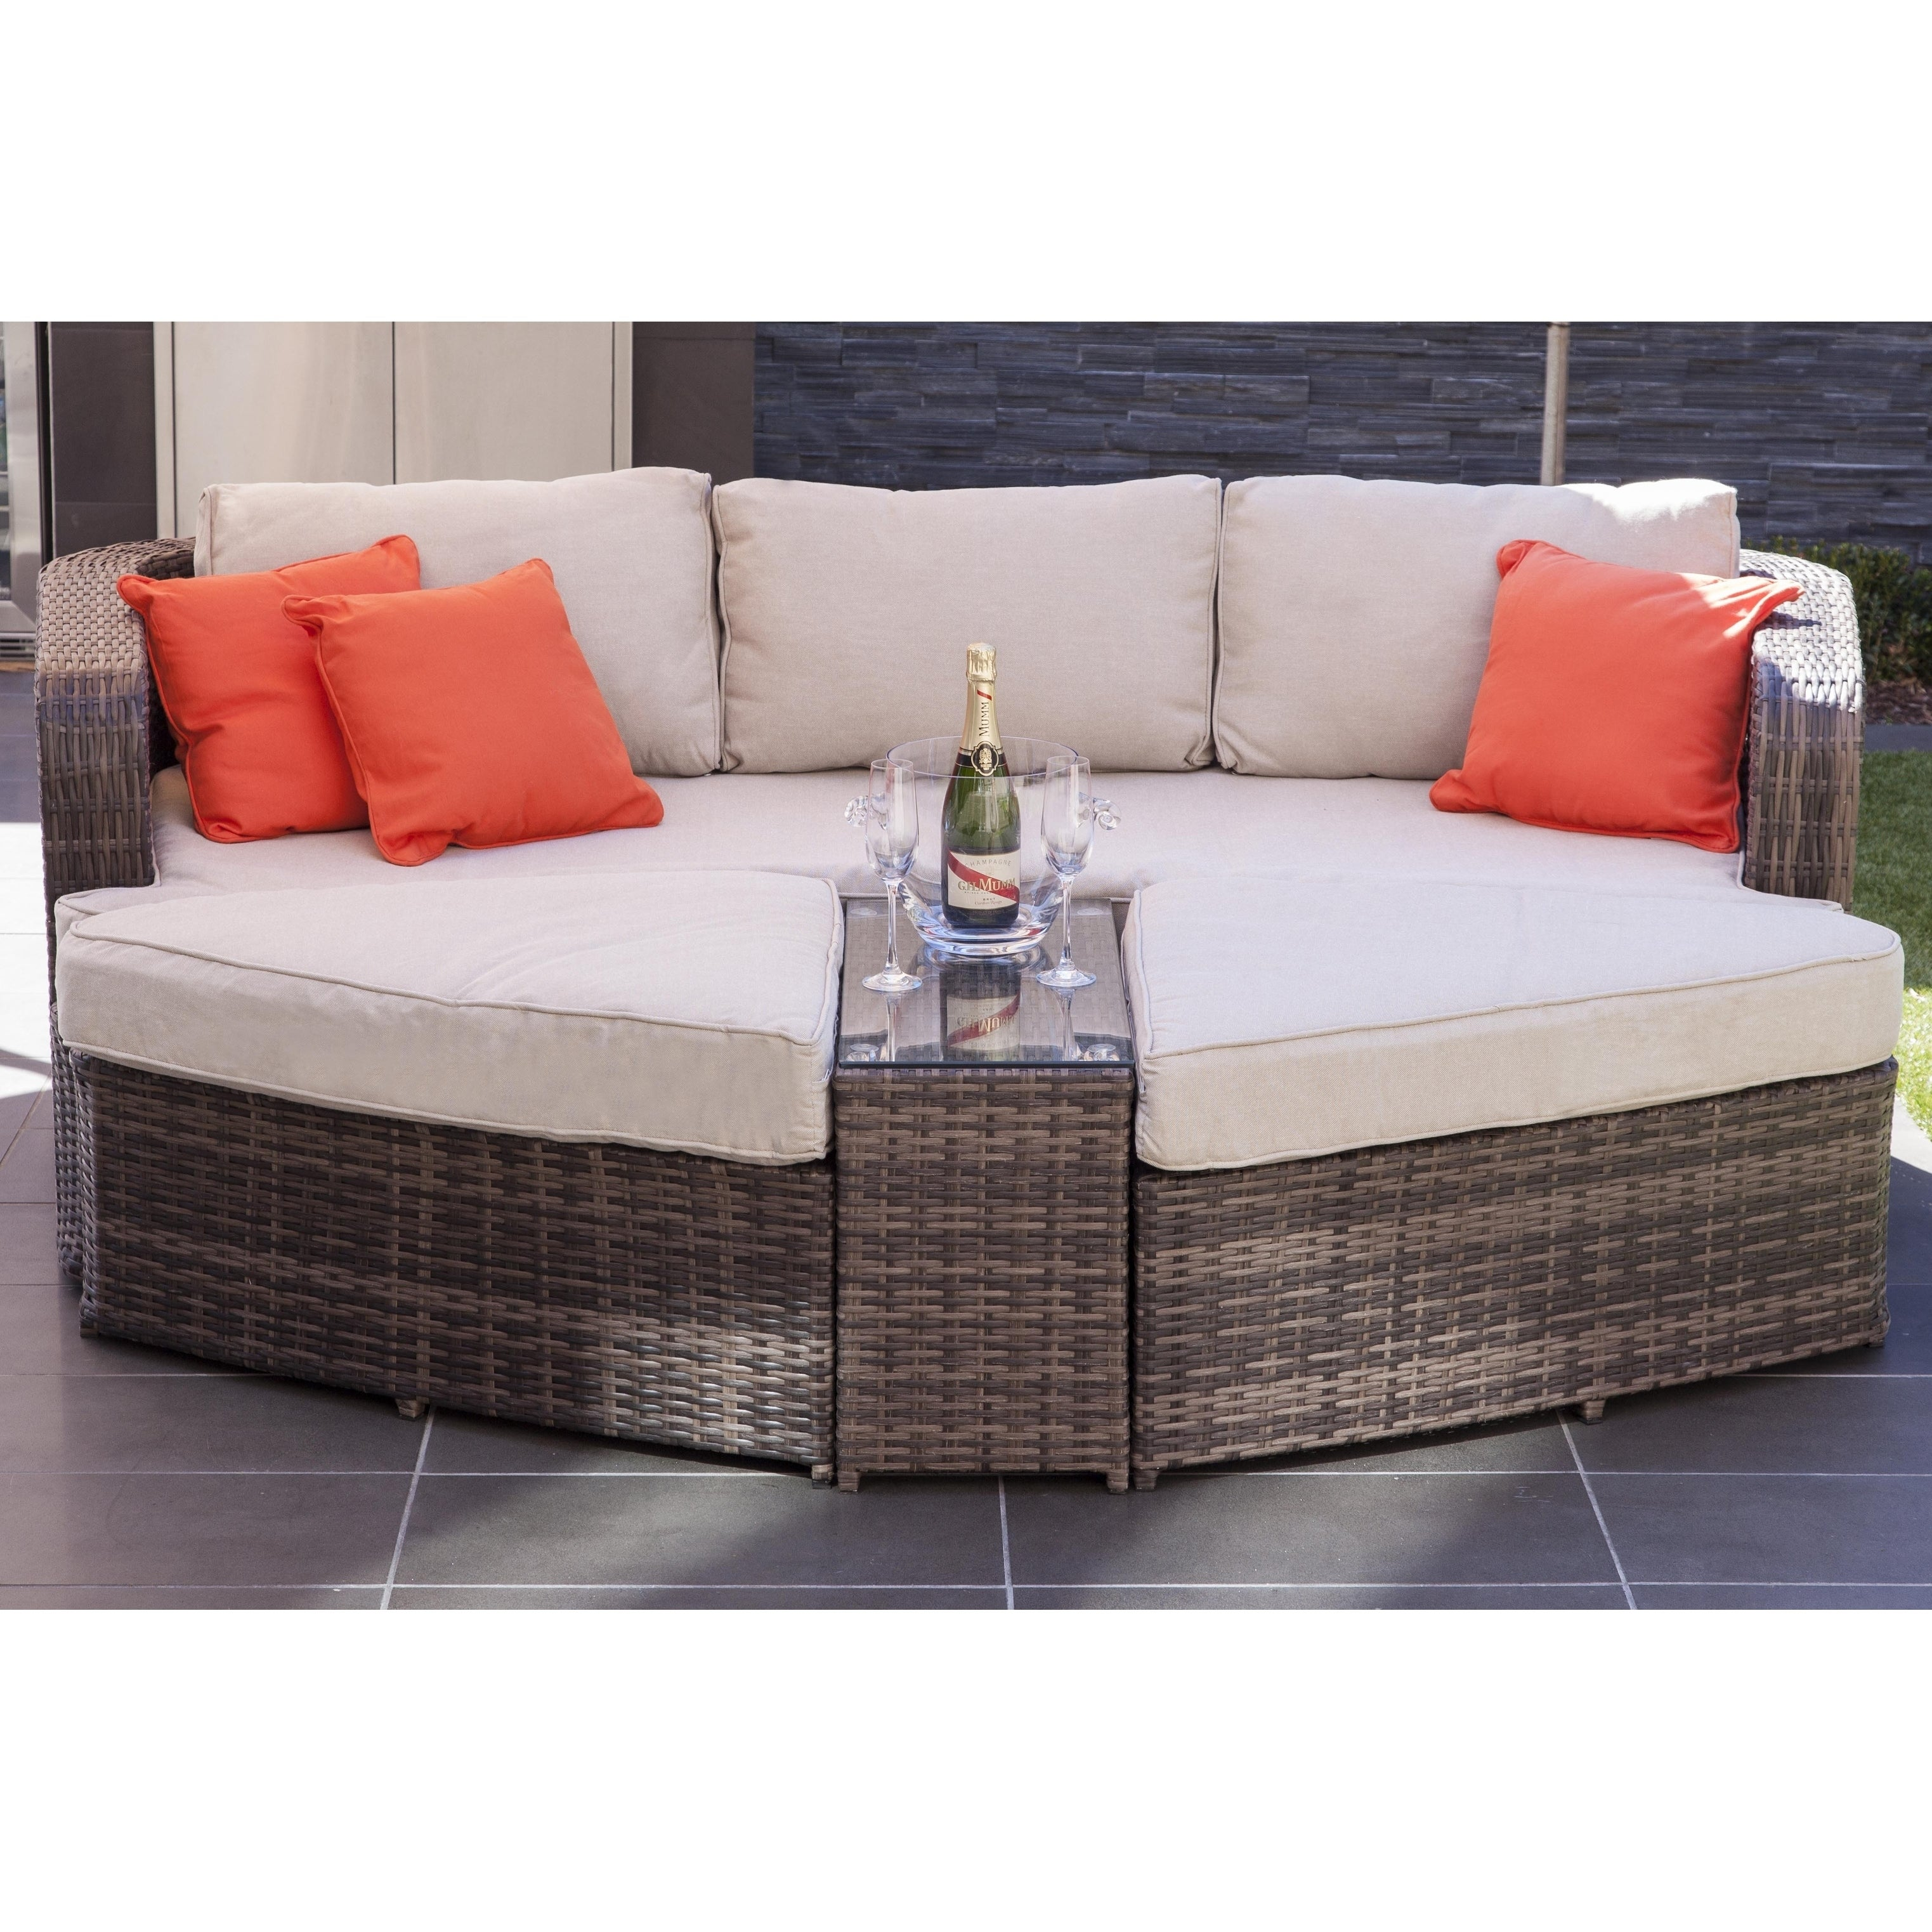 Astounding La Mesa Outdoor 4 Piece Patio Wicker Daybed Sectional Sofa Set By Direct Wicker Pdpeps Interior Chair Design Pdpepsorg